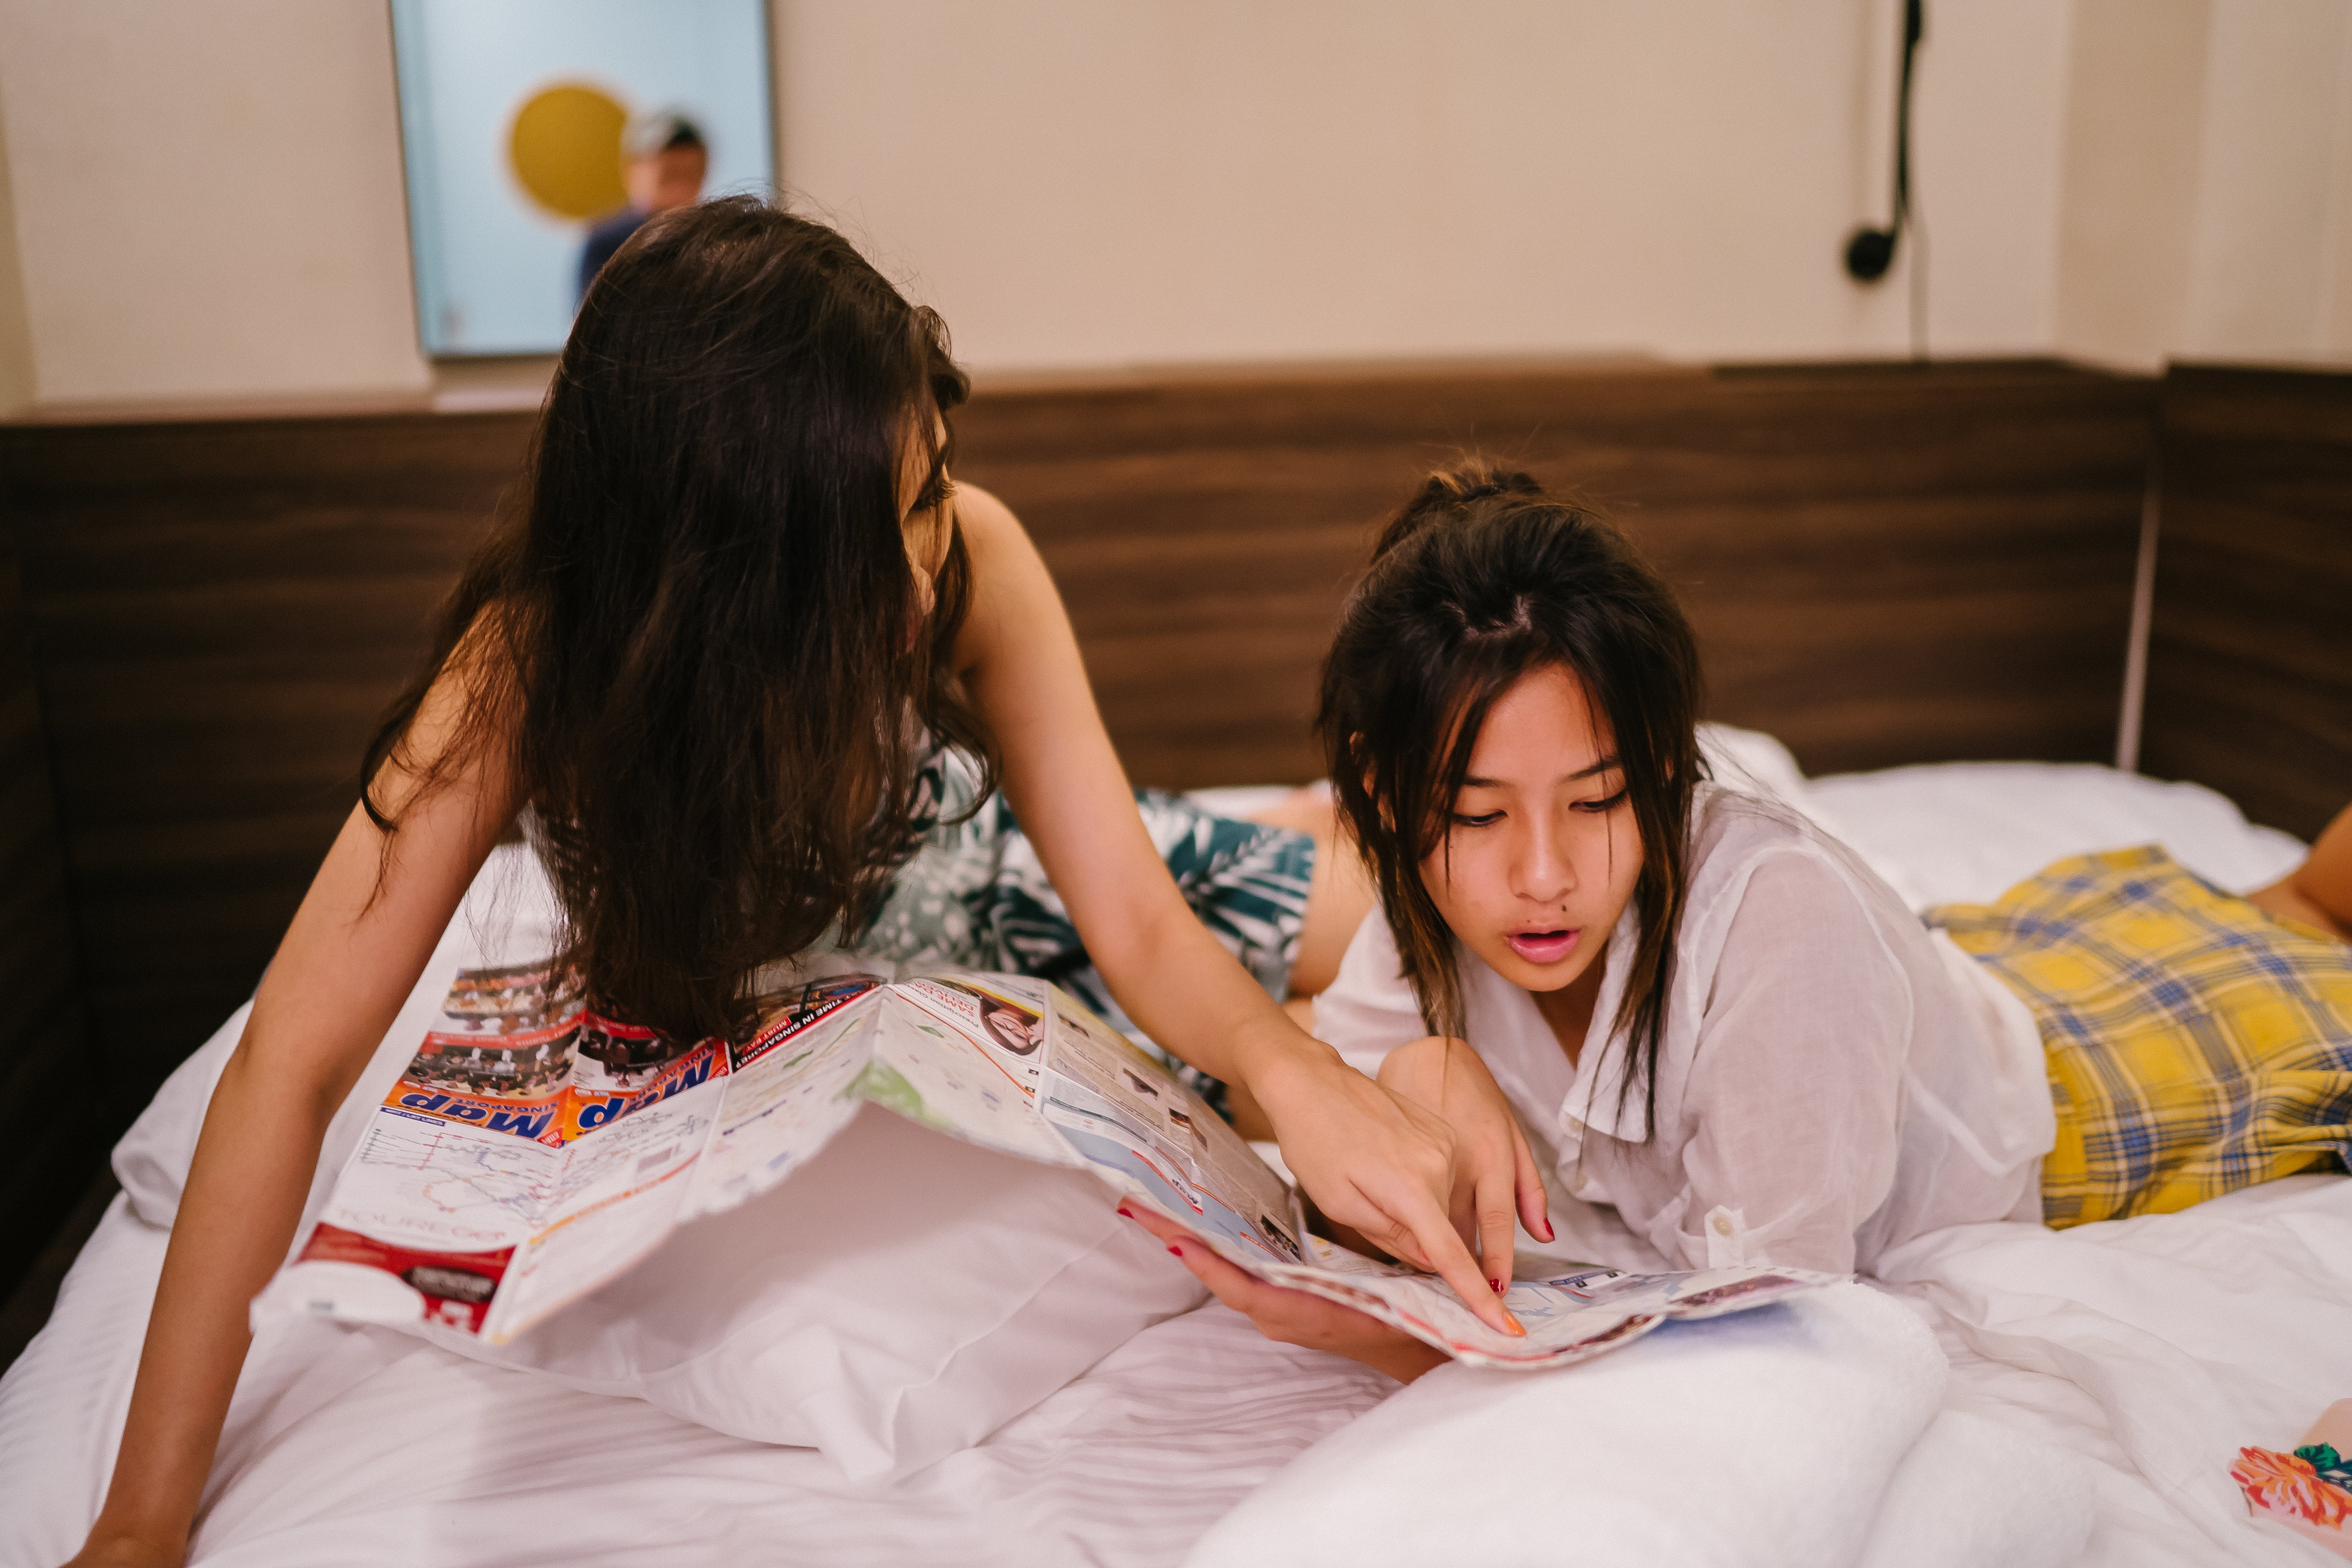 Two Women Laying On Bed While Looking At Paper